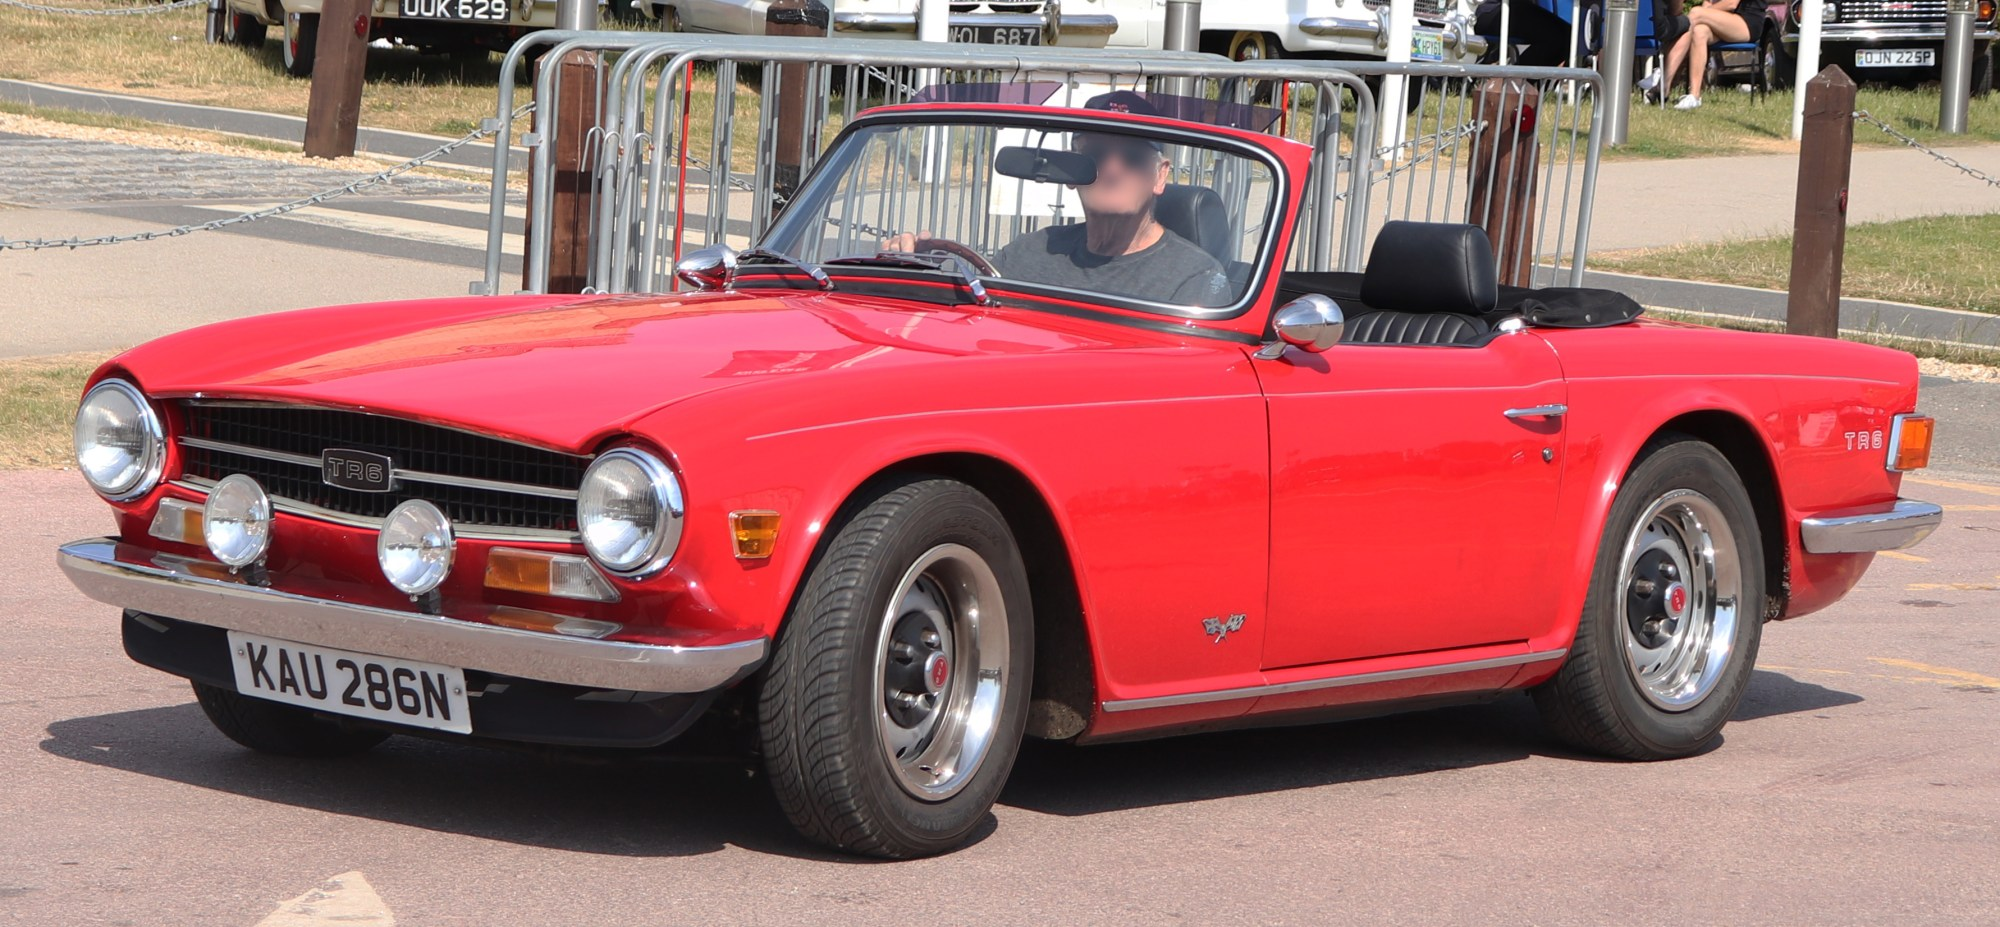 hight resolution of triumph tr6 wikipedia tr6 in addition triumph tr6 engine valve diagram as well as triumph